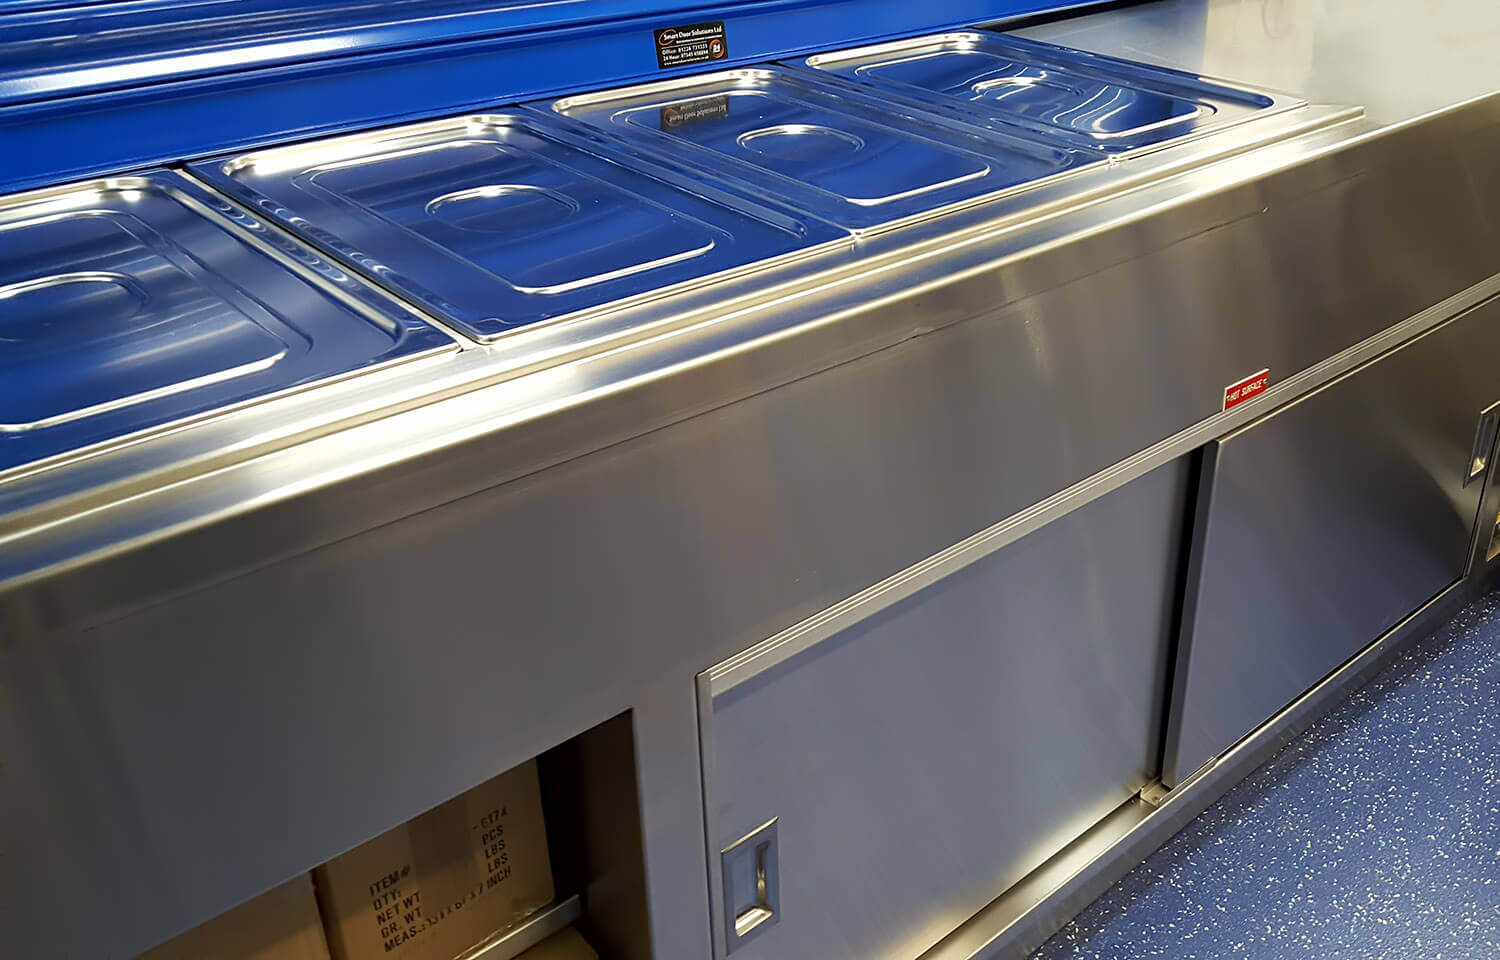 Stainless steel cleaning and maintenance